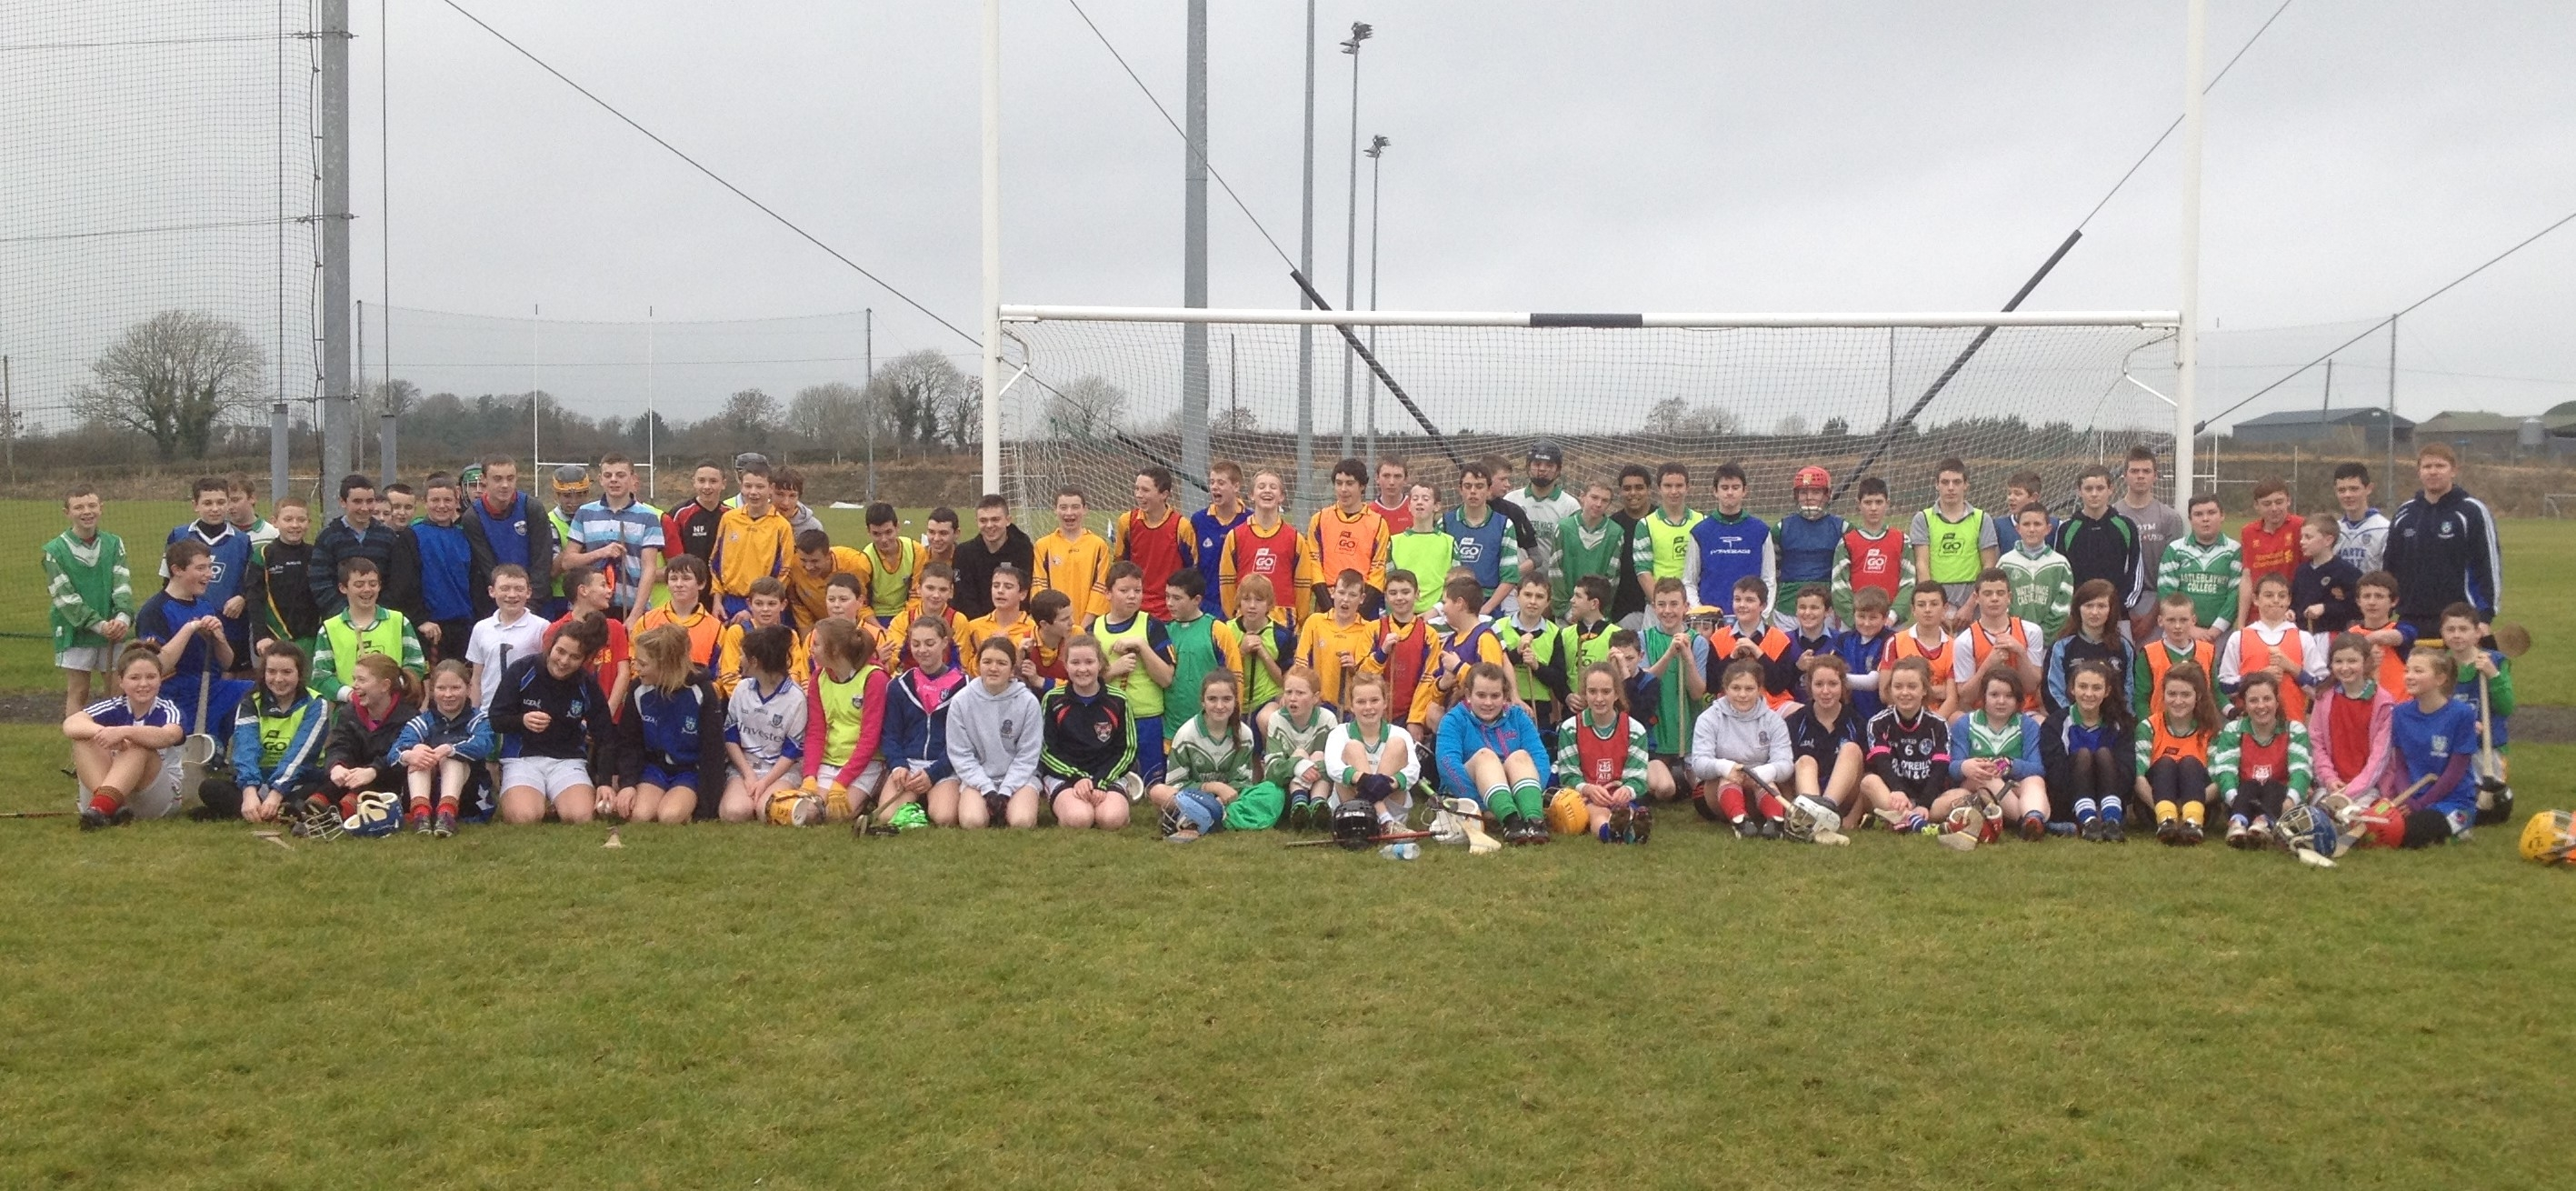 Secondary School Hurling Coaching/Blitz Day